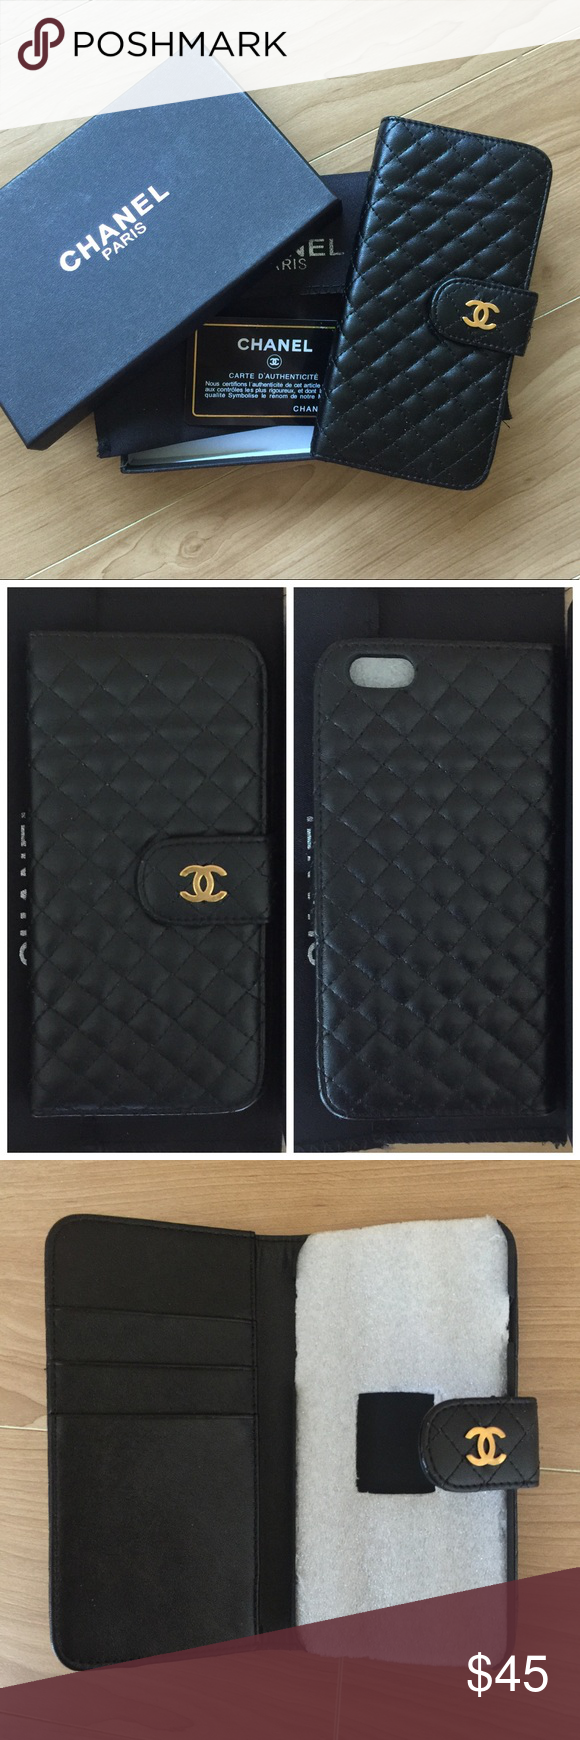 🆕⬇️iPhone 6 Plus/6s Plus Case High quality lambskin leather case with magnetic closure. New in box includes dust bag and card. Limited quantities available. Fits iPhone 6 Plus and iPhone 6s Plus. Accessories Phone Cases